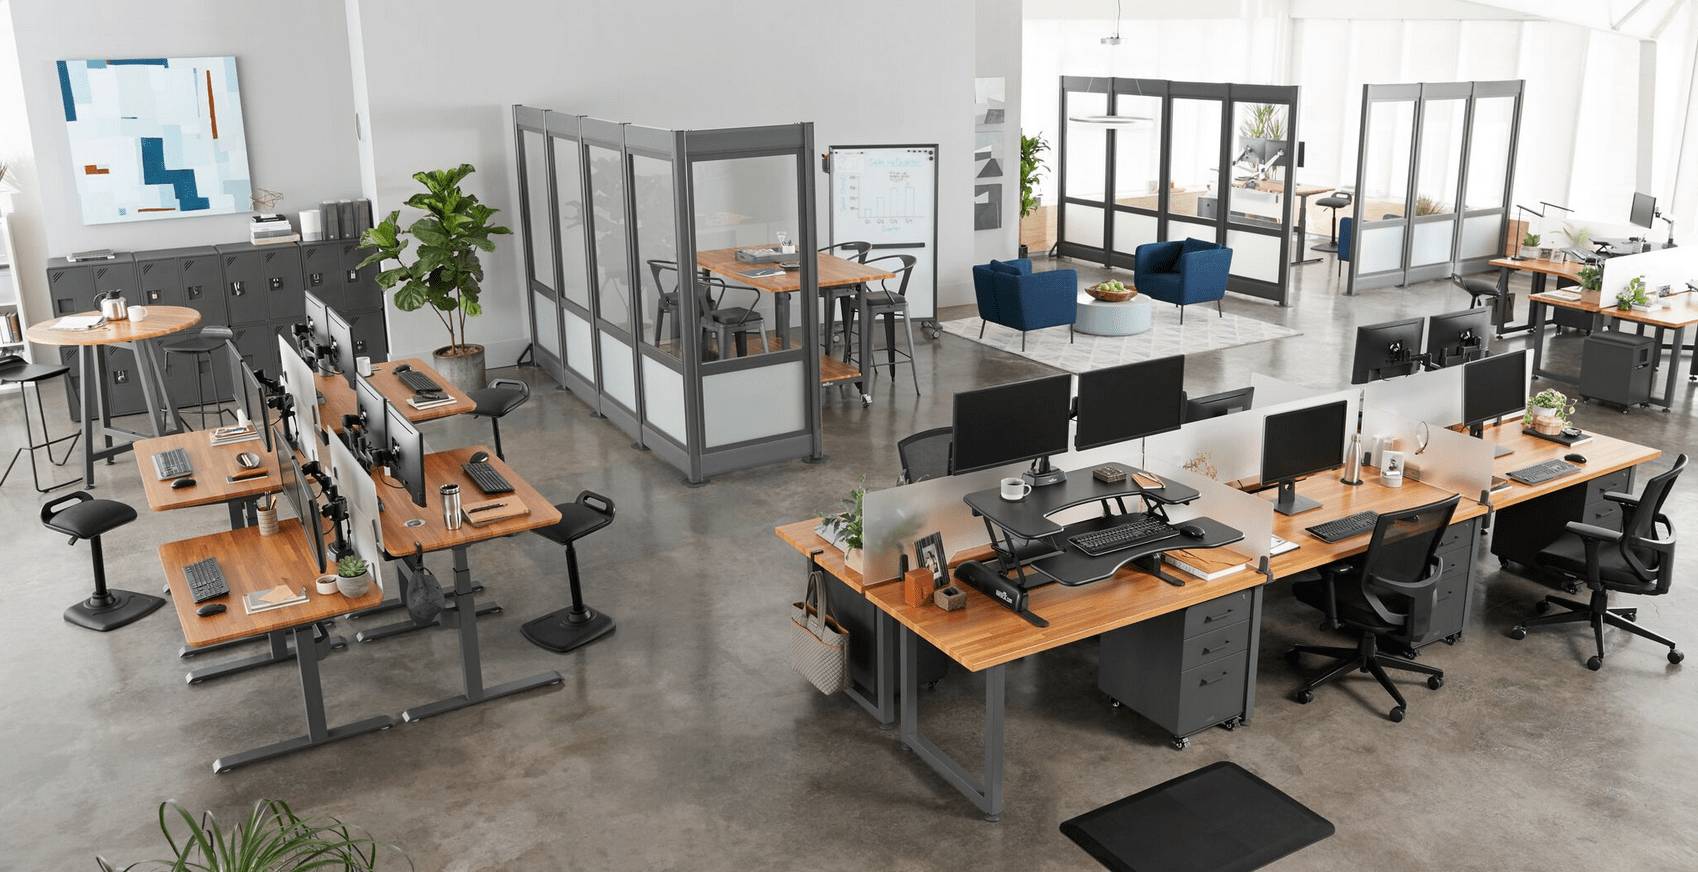 Flexible work stations top companies are shaking up traditional office setups to boost employee interaction comfort and productivity